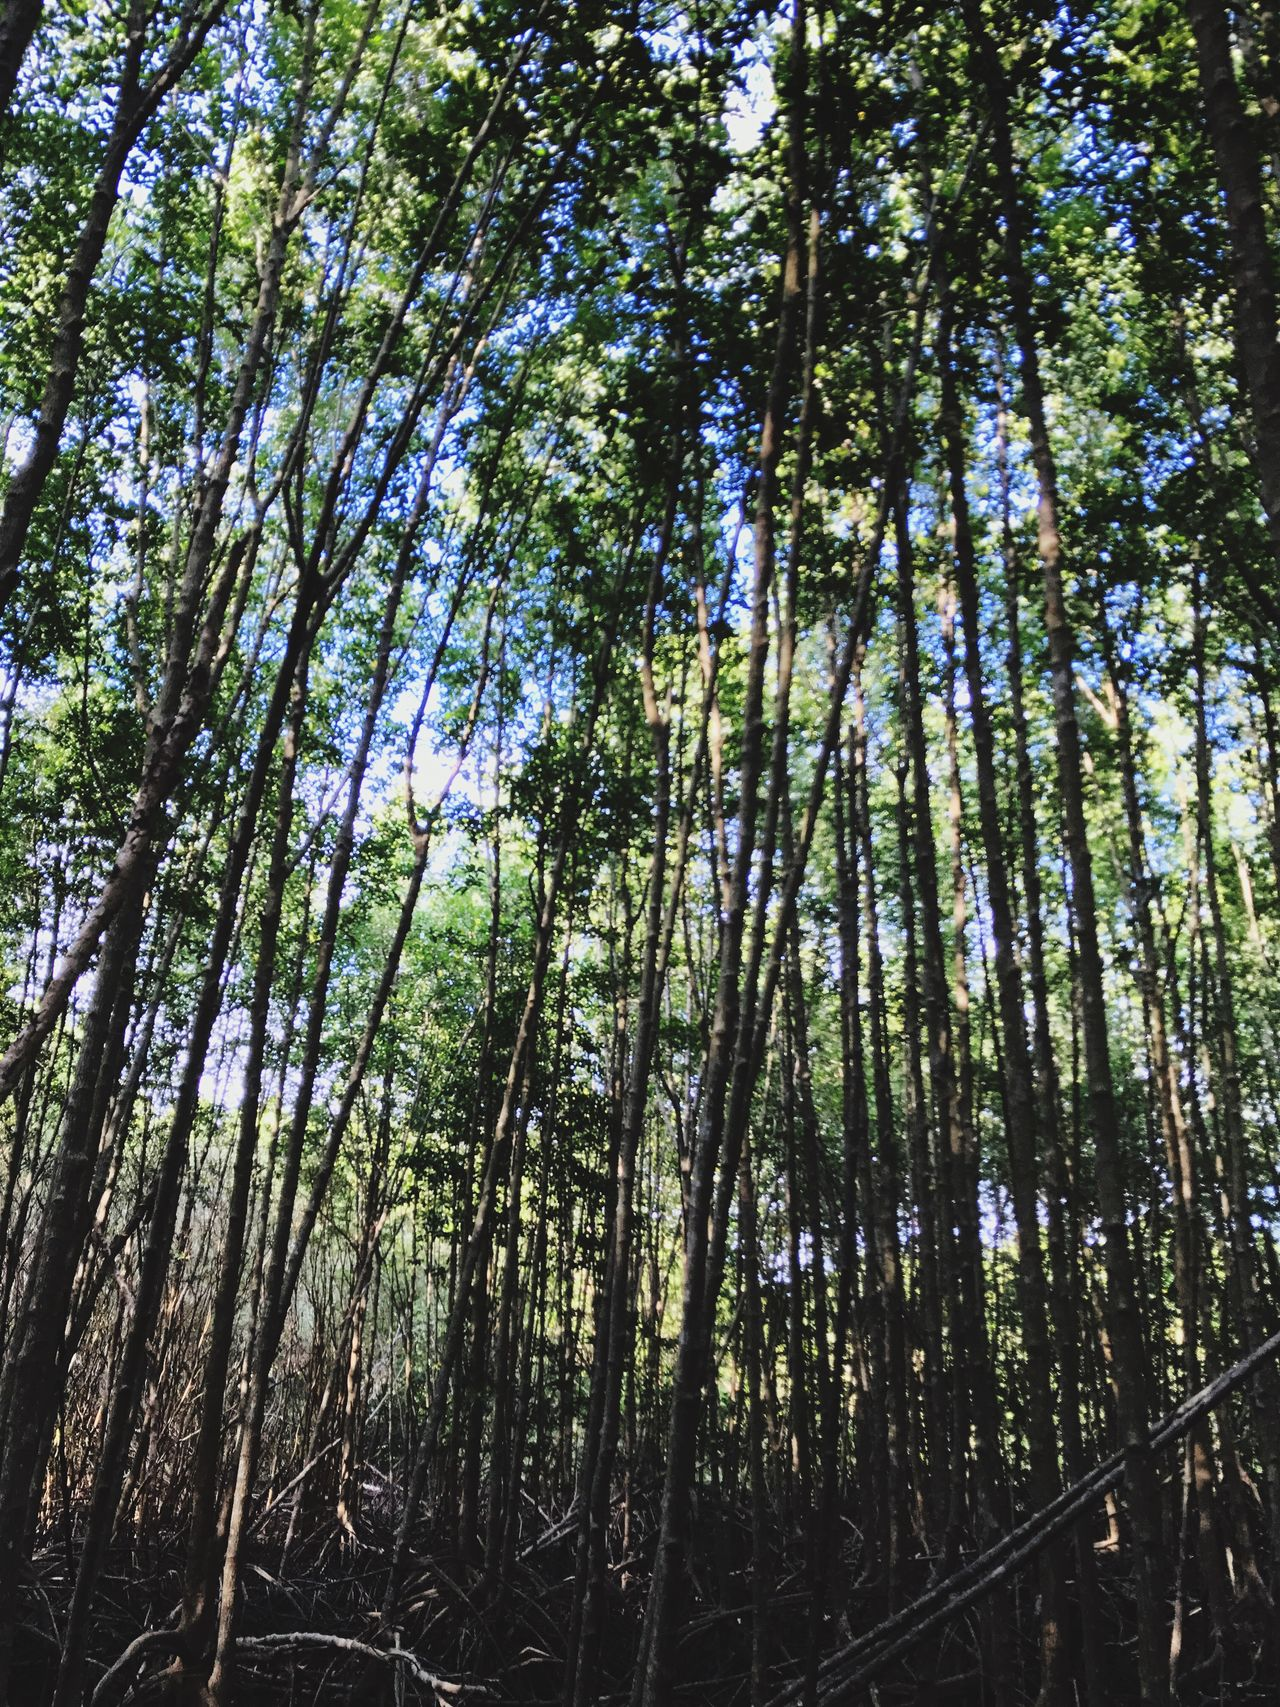 Mangrove Mangrove Forest Mangroves Forest Forest Photography Nature Nature_collection Nature Photography Naturelovers Outdoors Outdoor Photography Tree Trees No People Life Daytime Daylight Blue Sky View Backgrounds